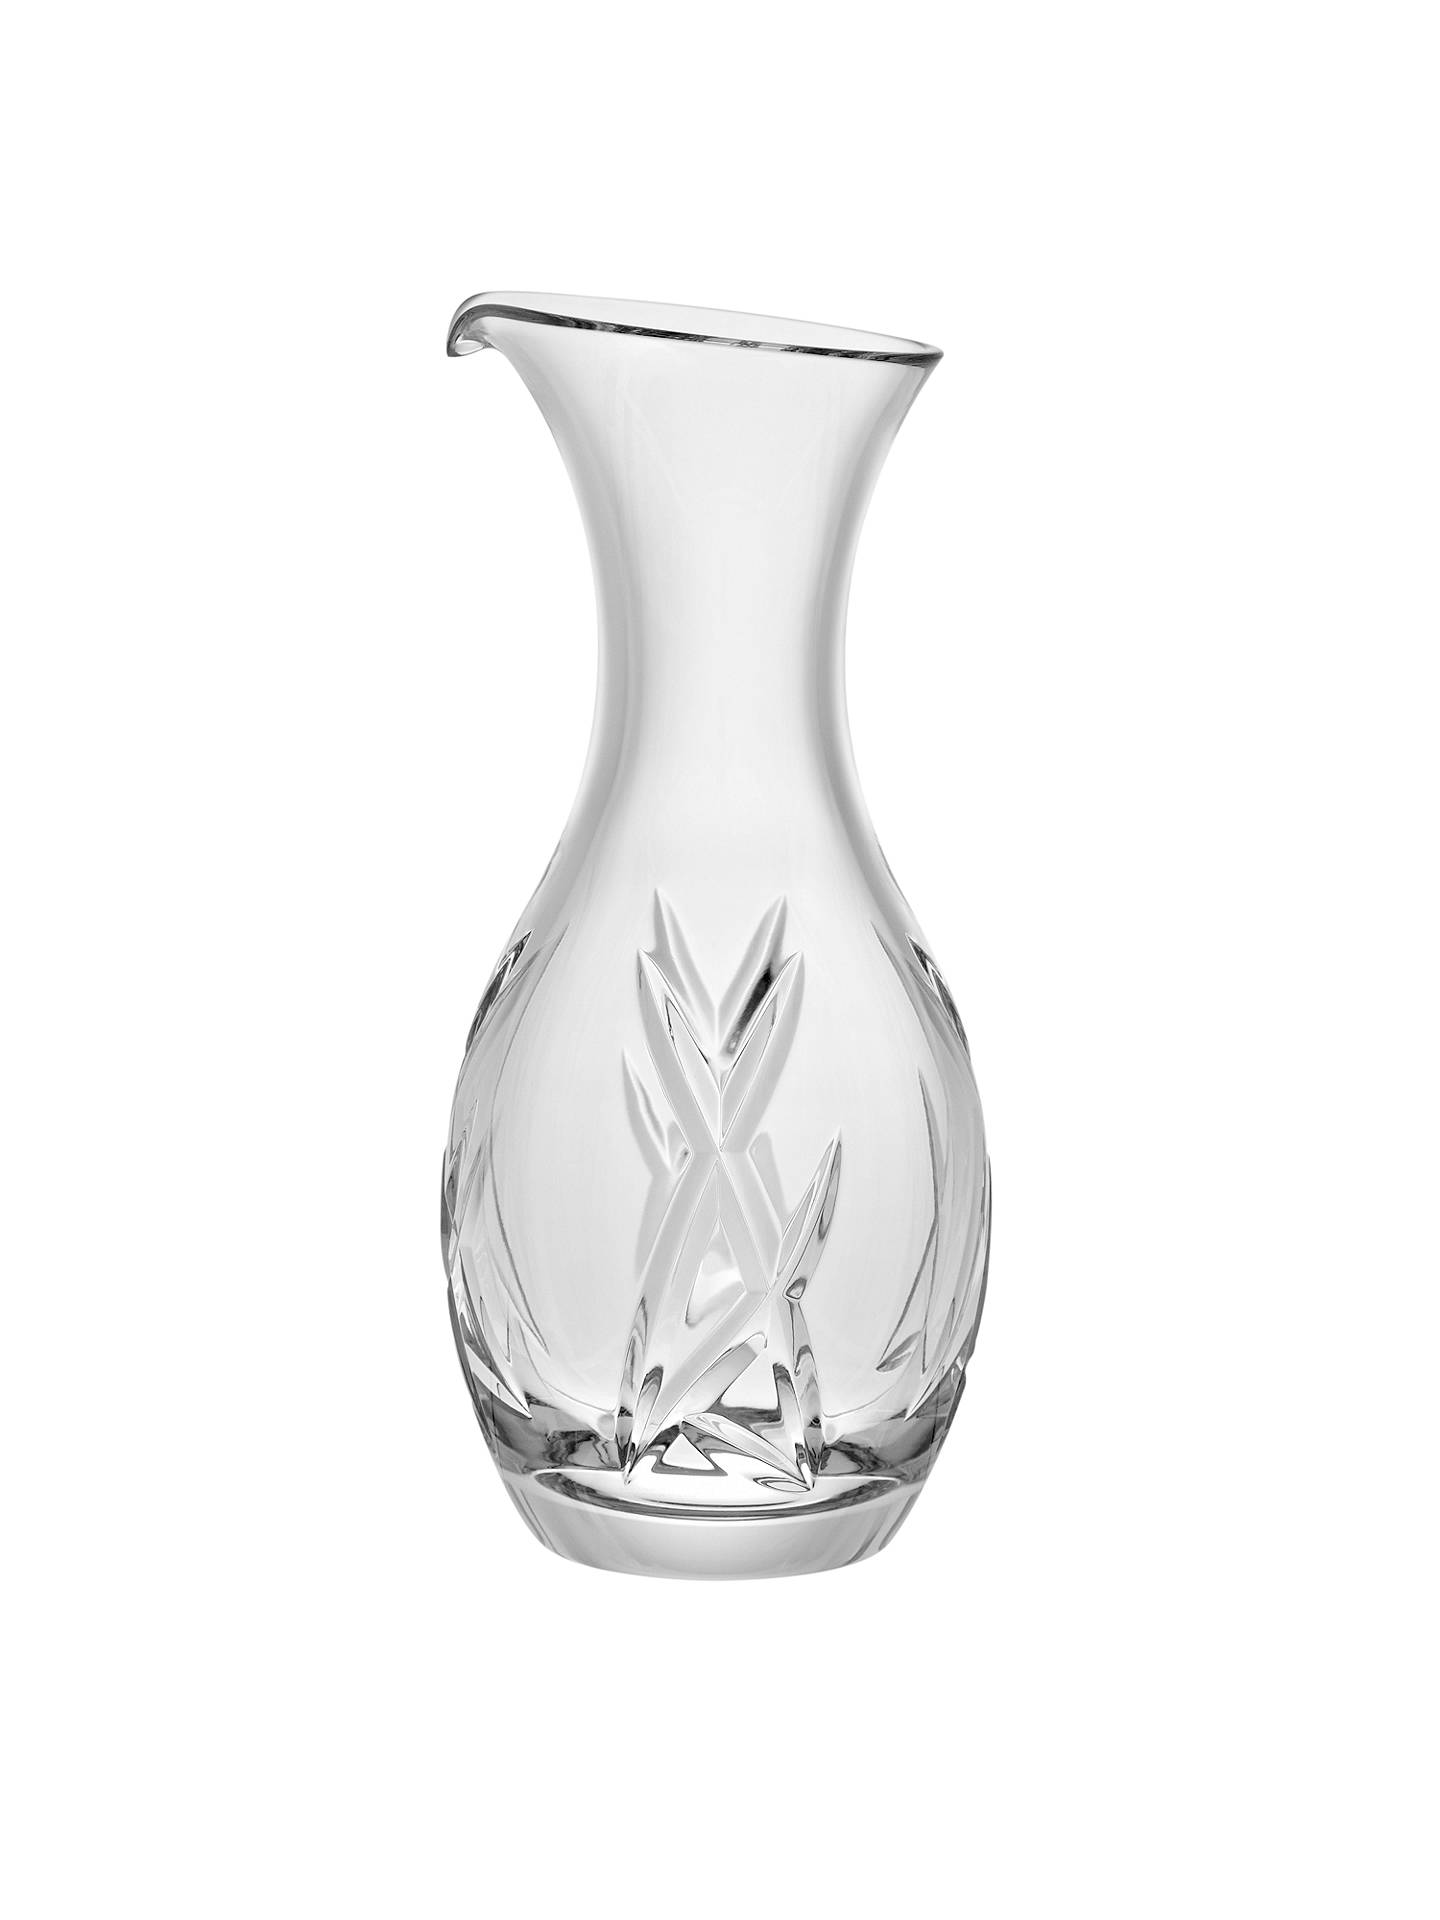 John Rocha for Waterford Cut Lead Crystal Signature Carafe at John ...